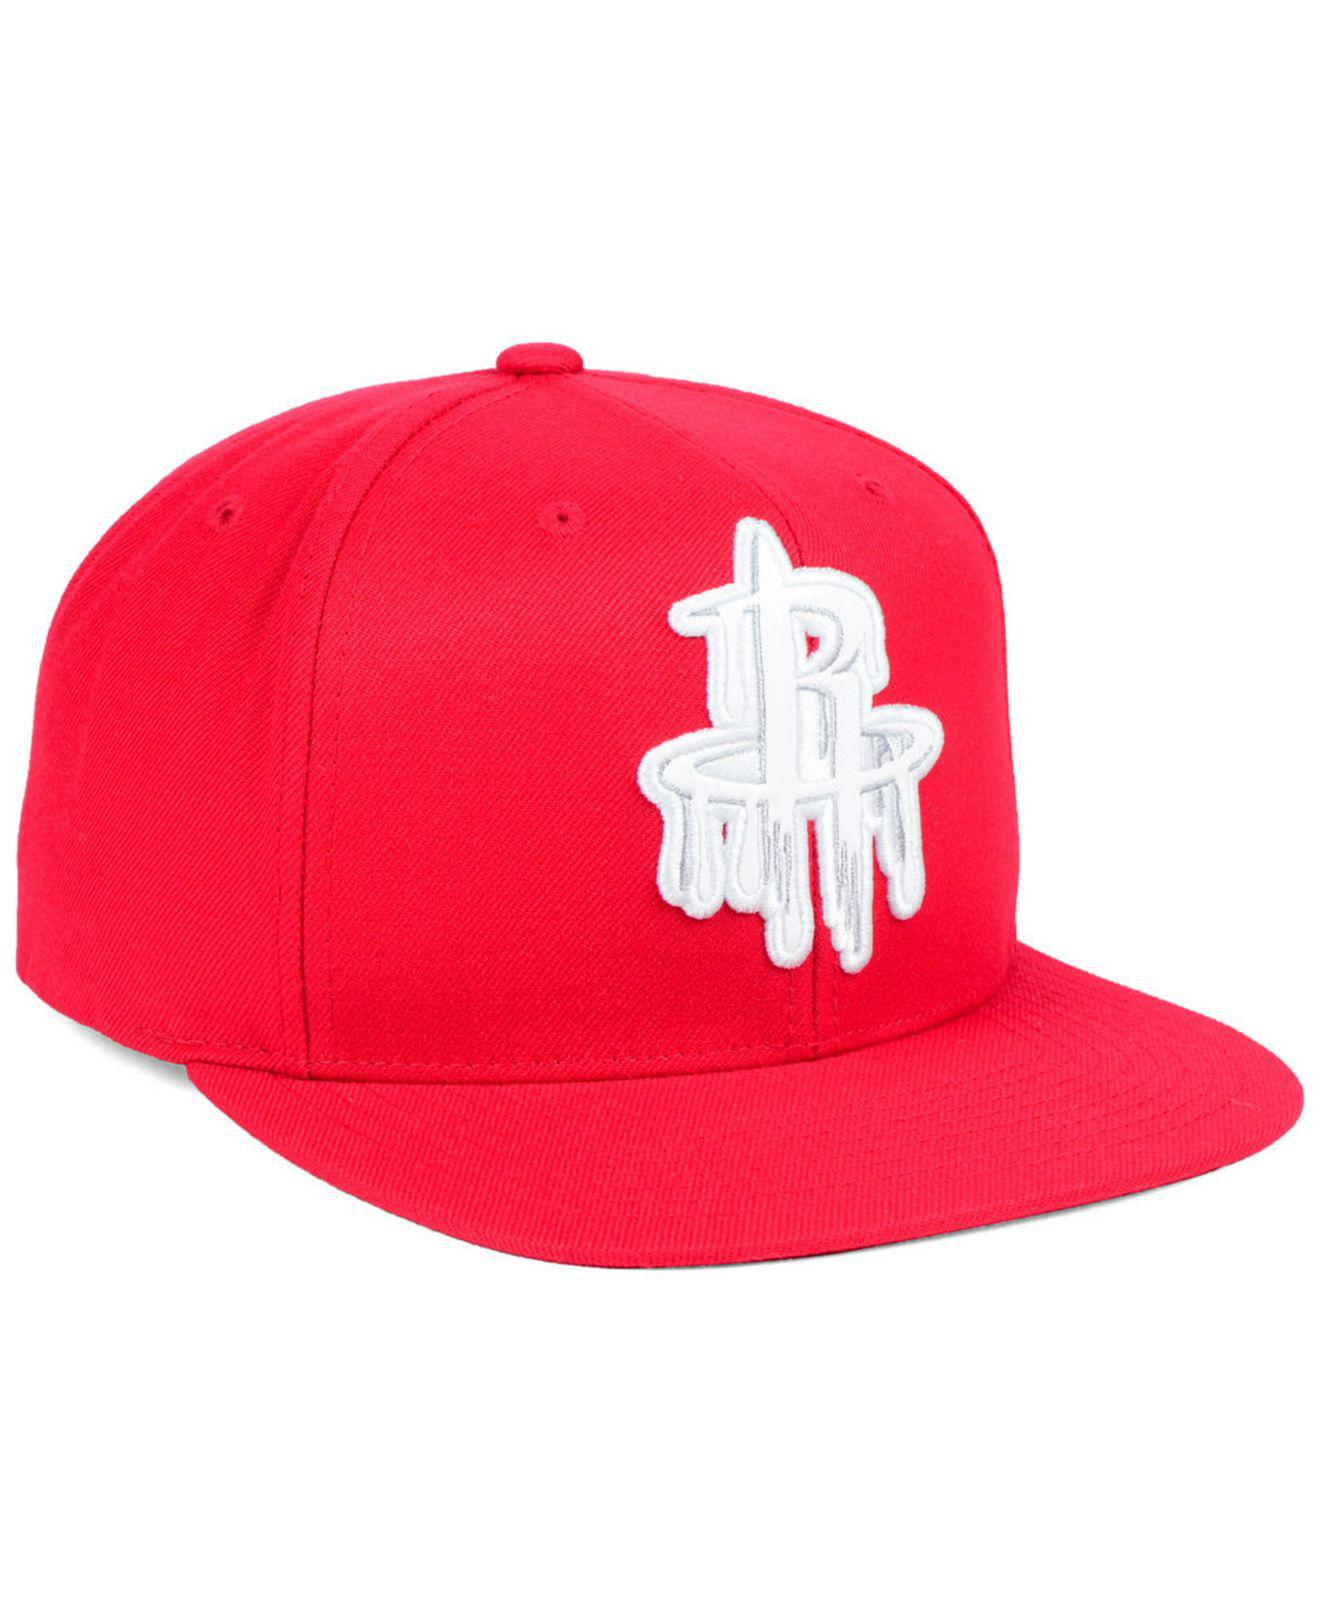 timeless design b12f0 1bb65 ... discount code for lyst mitchell ness houston rockets dripped snapback  cap in red cde35 9201e